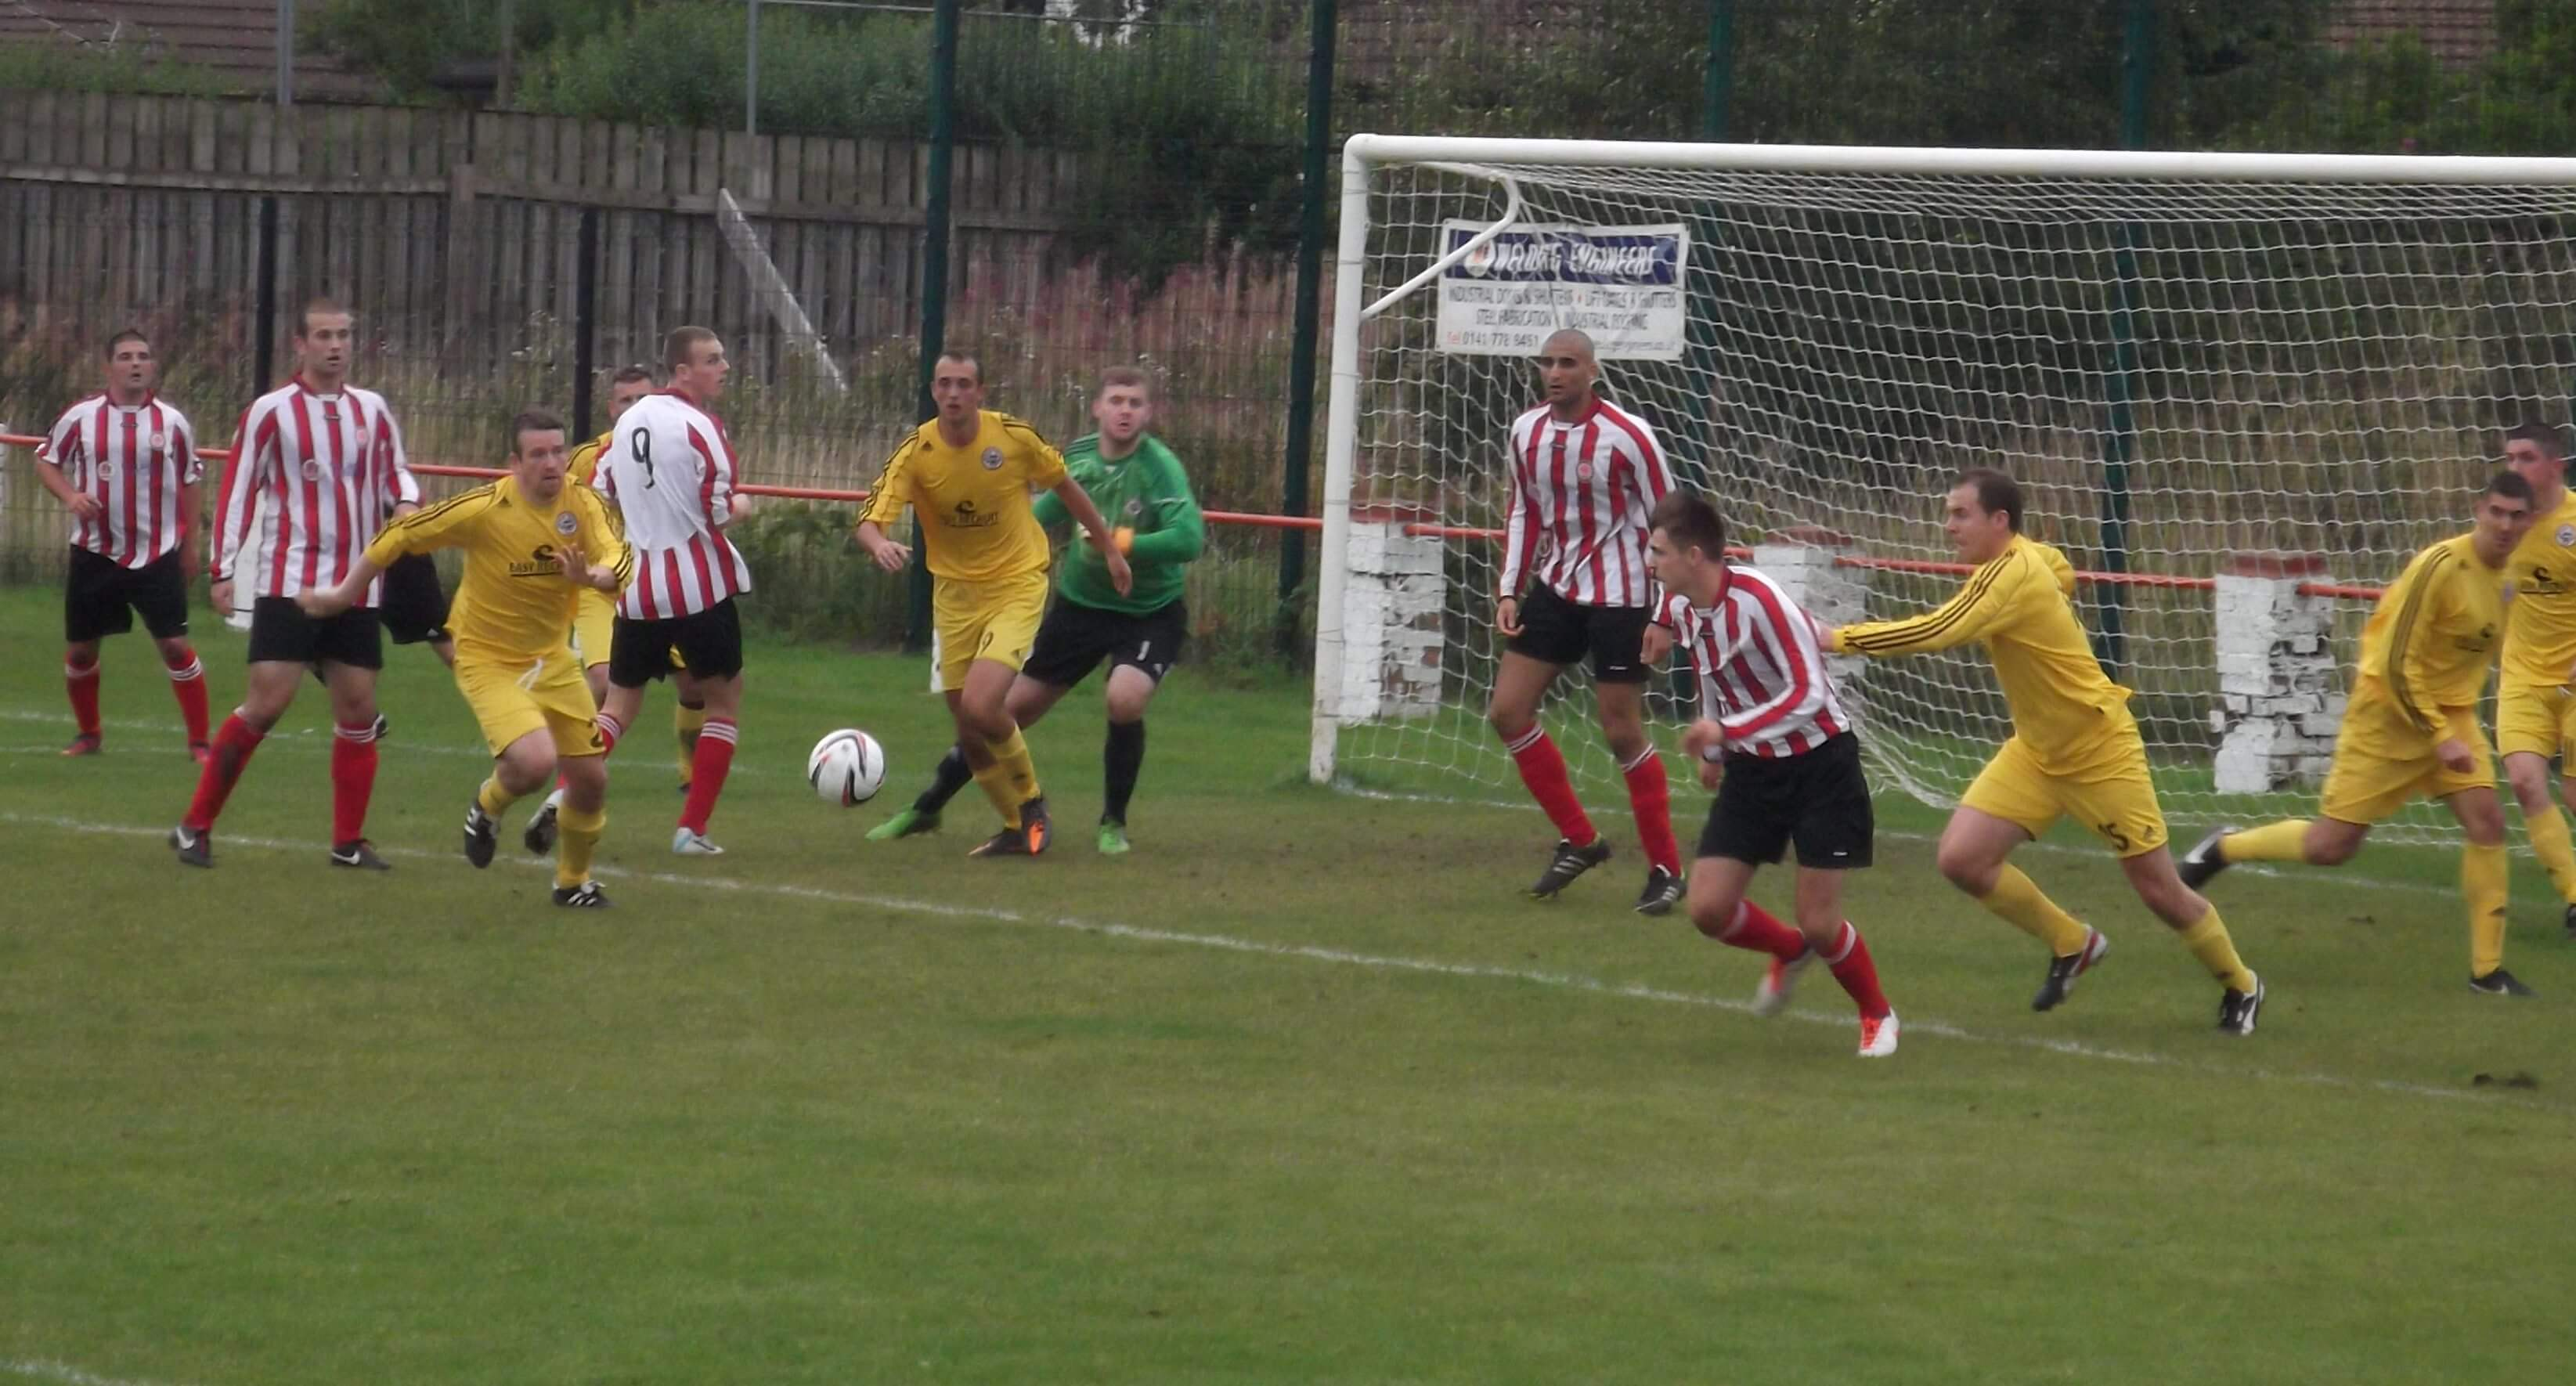 Frantic second half scramble in the Maryhill goal